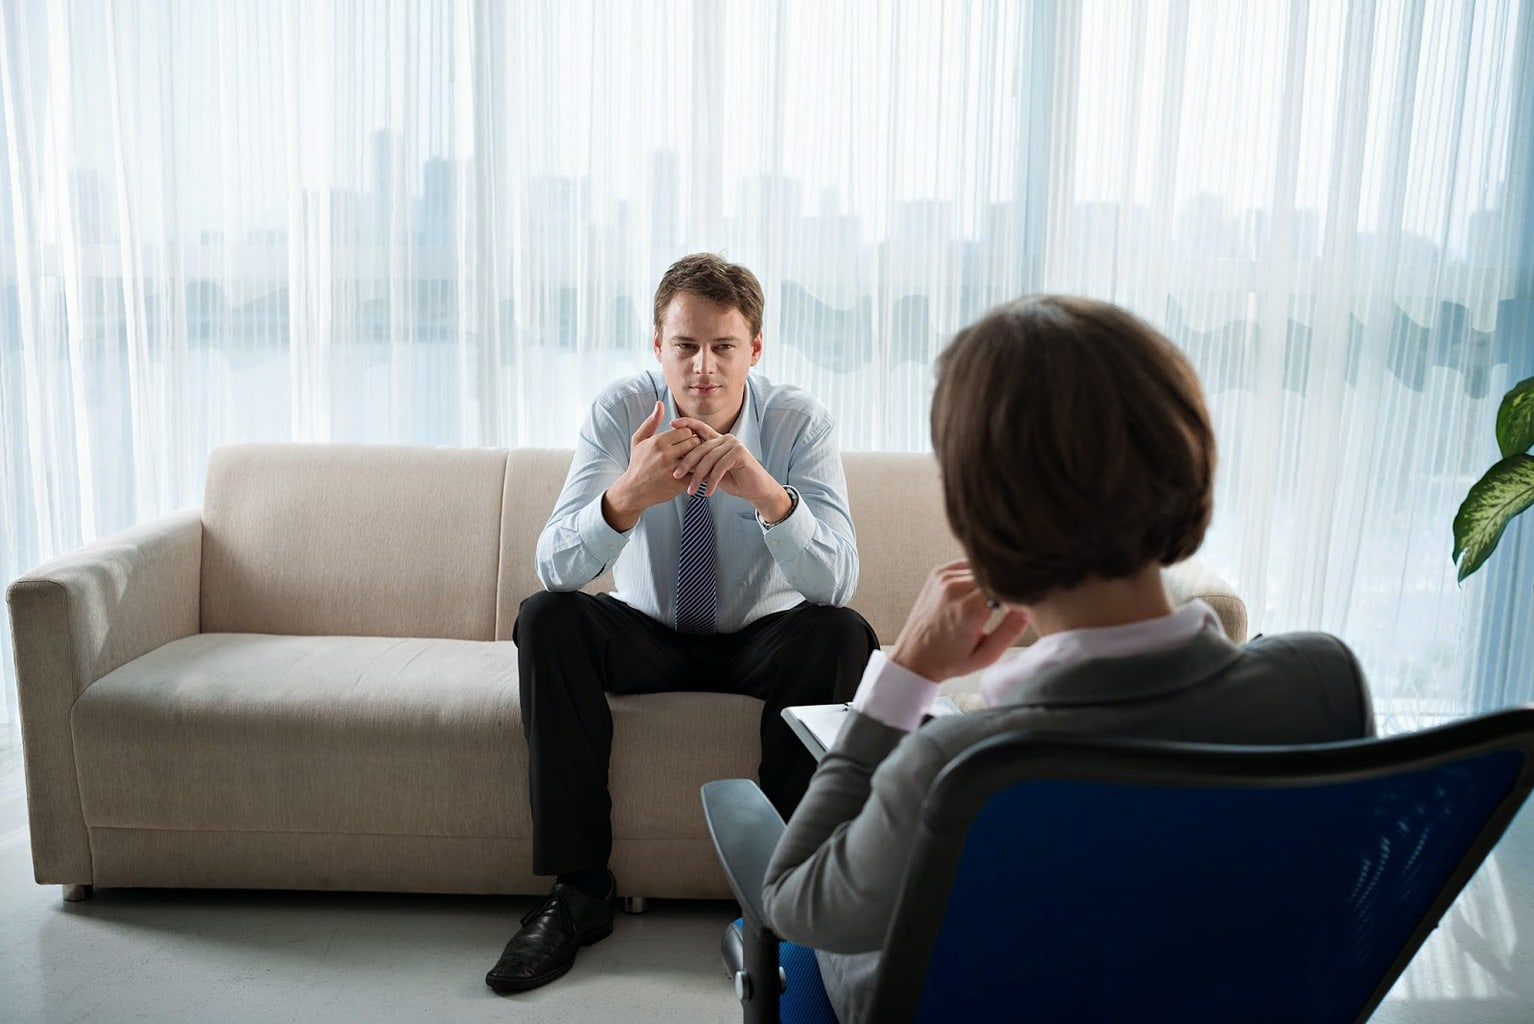 counselor and client safety